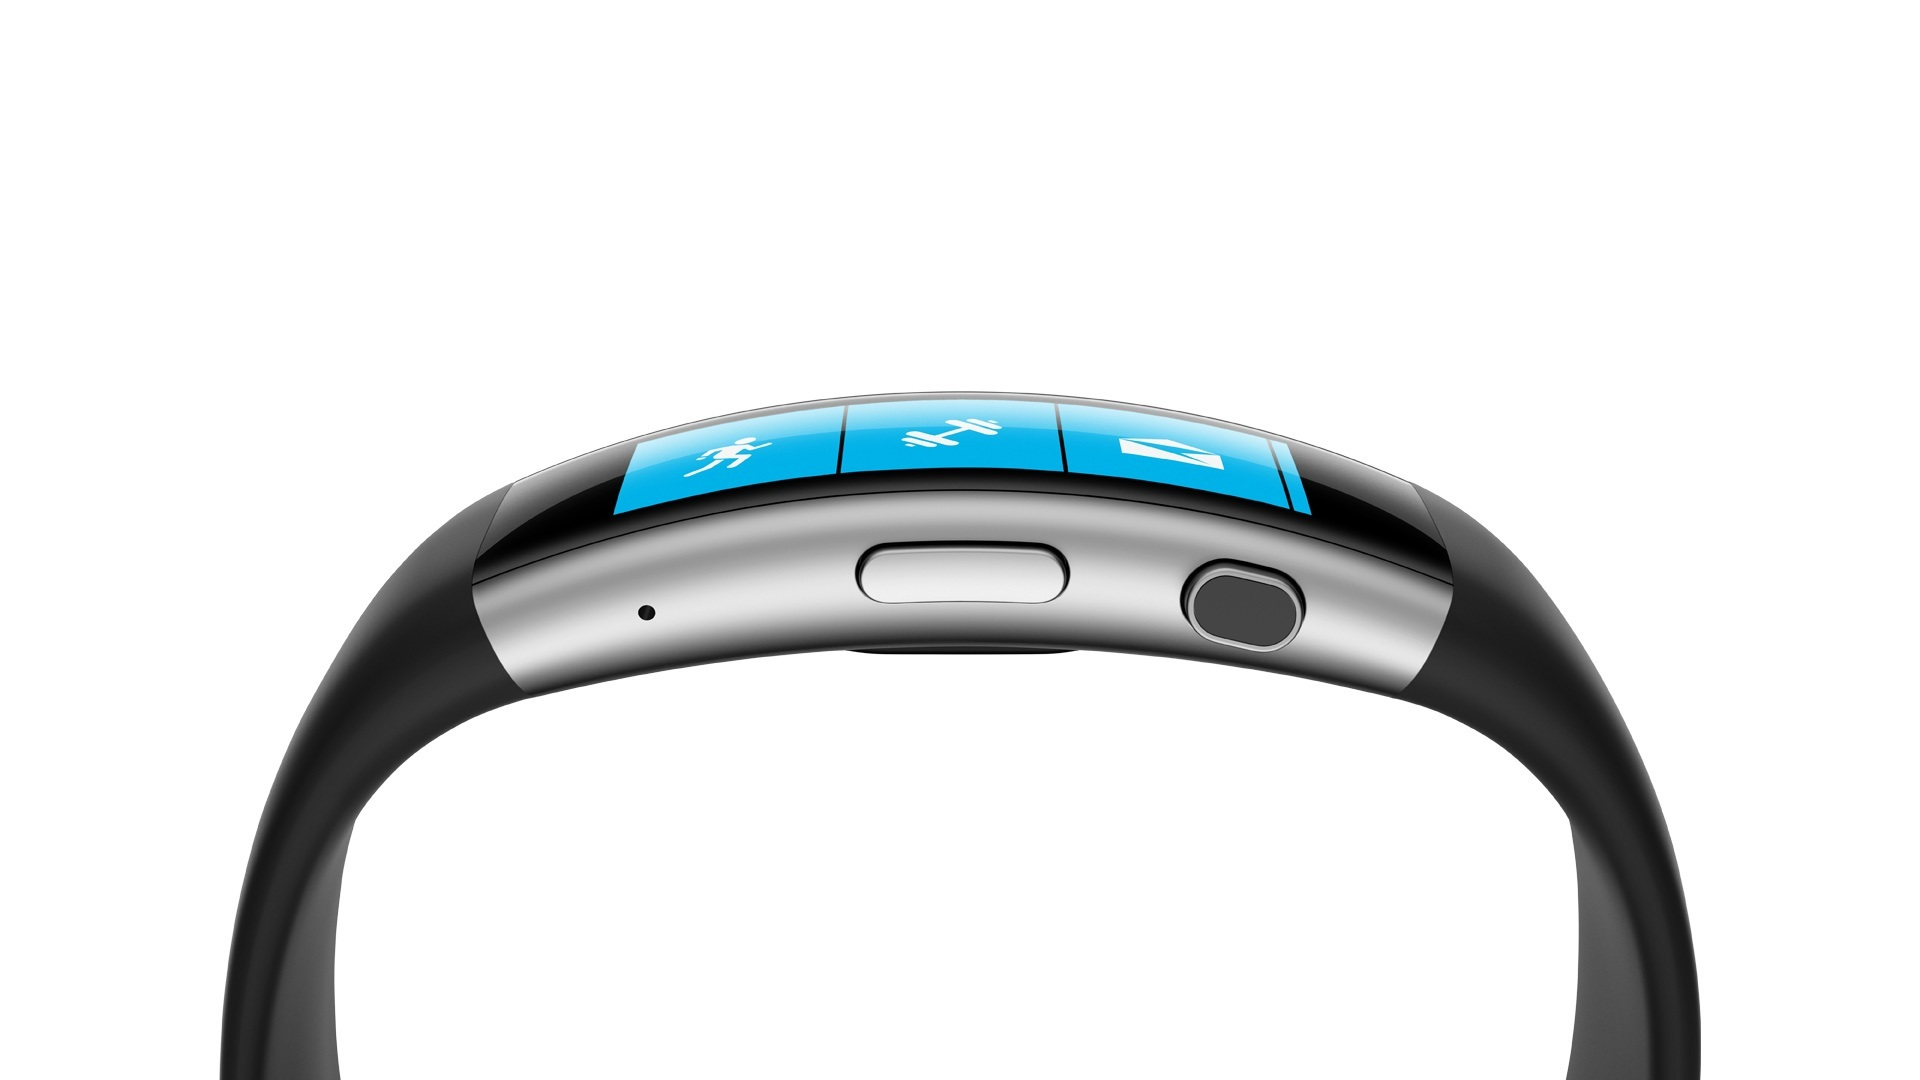 Microsoft Band 2 Render